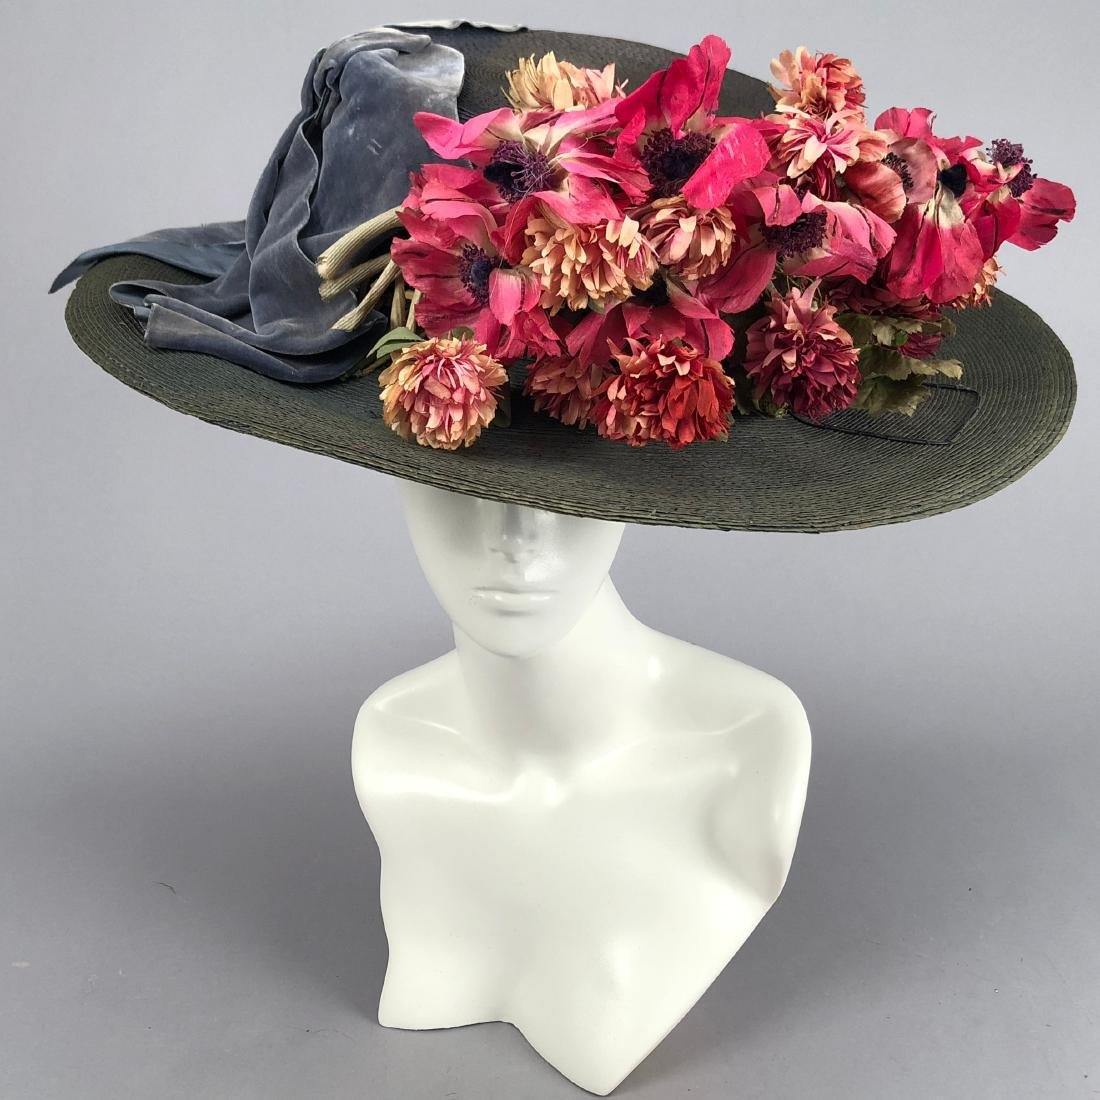 BLUE-GREY STRAW WIDE-BRIM HAT, QUEENS AUCTION, c. 1908